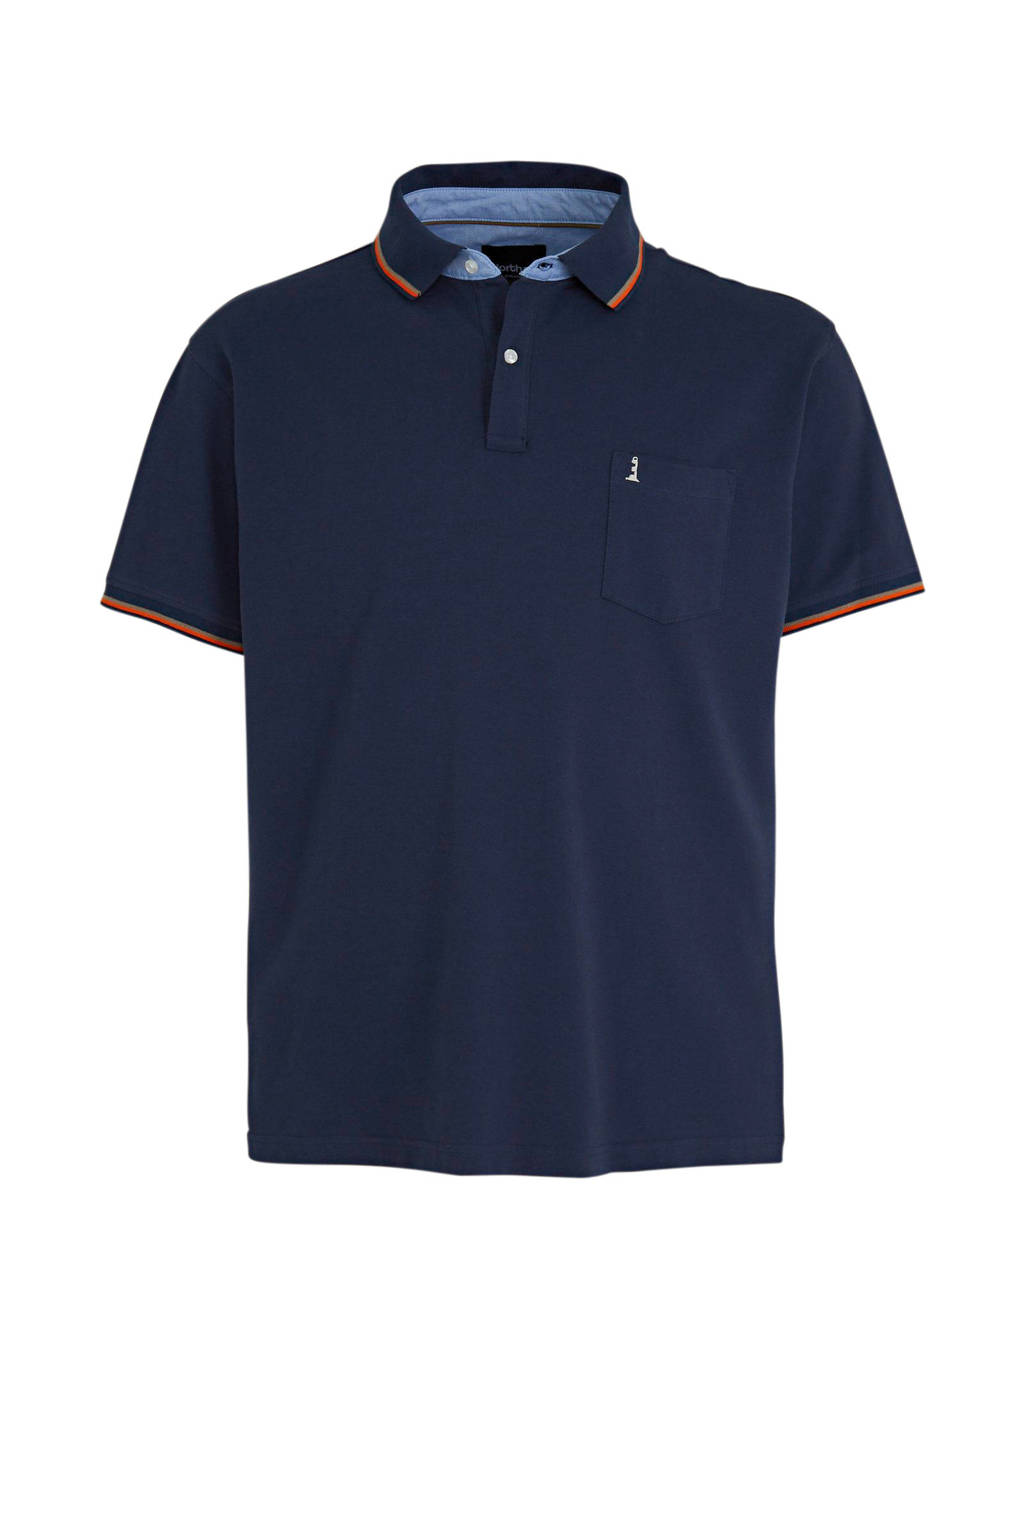 North 56°4 +size regular fit polo donkerblauw, Donkerblauw